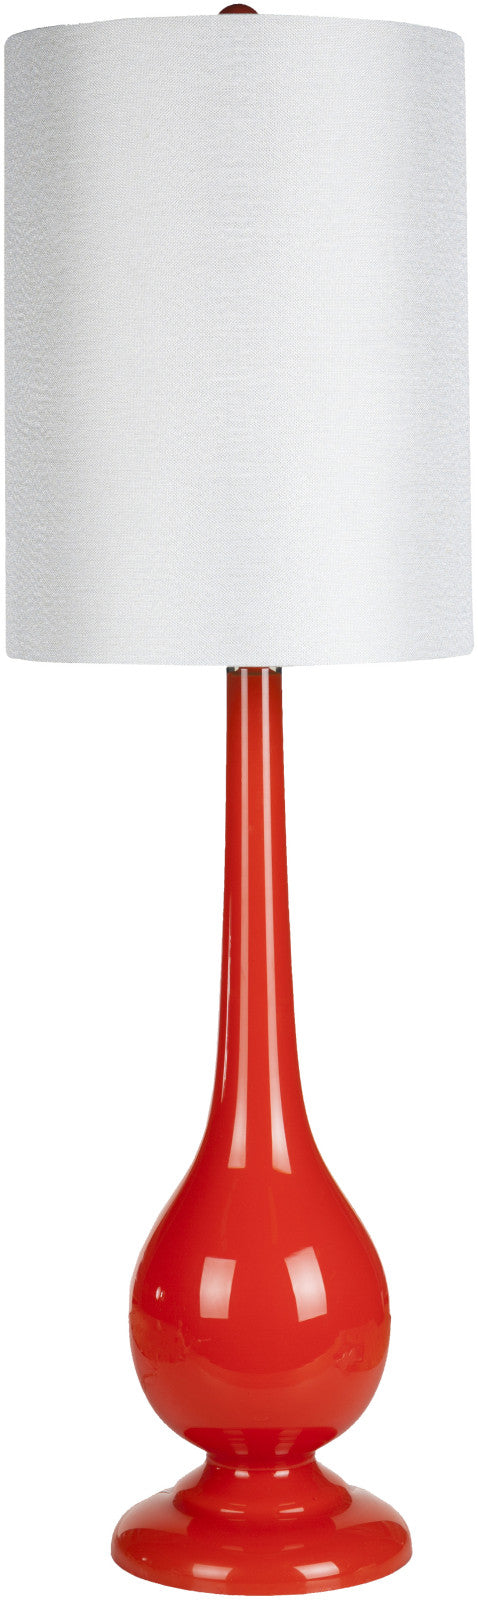 Surya Glass LMP-1022 Lamp